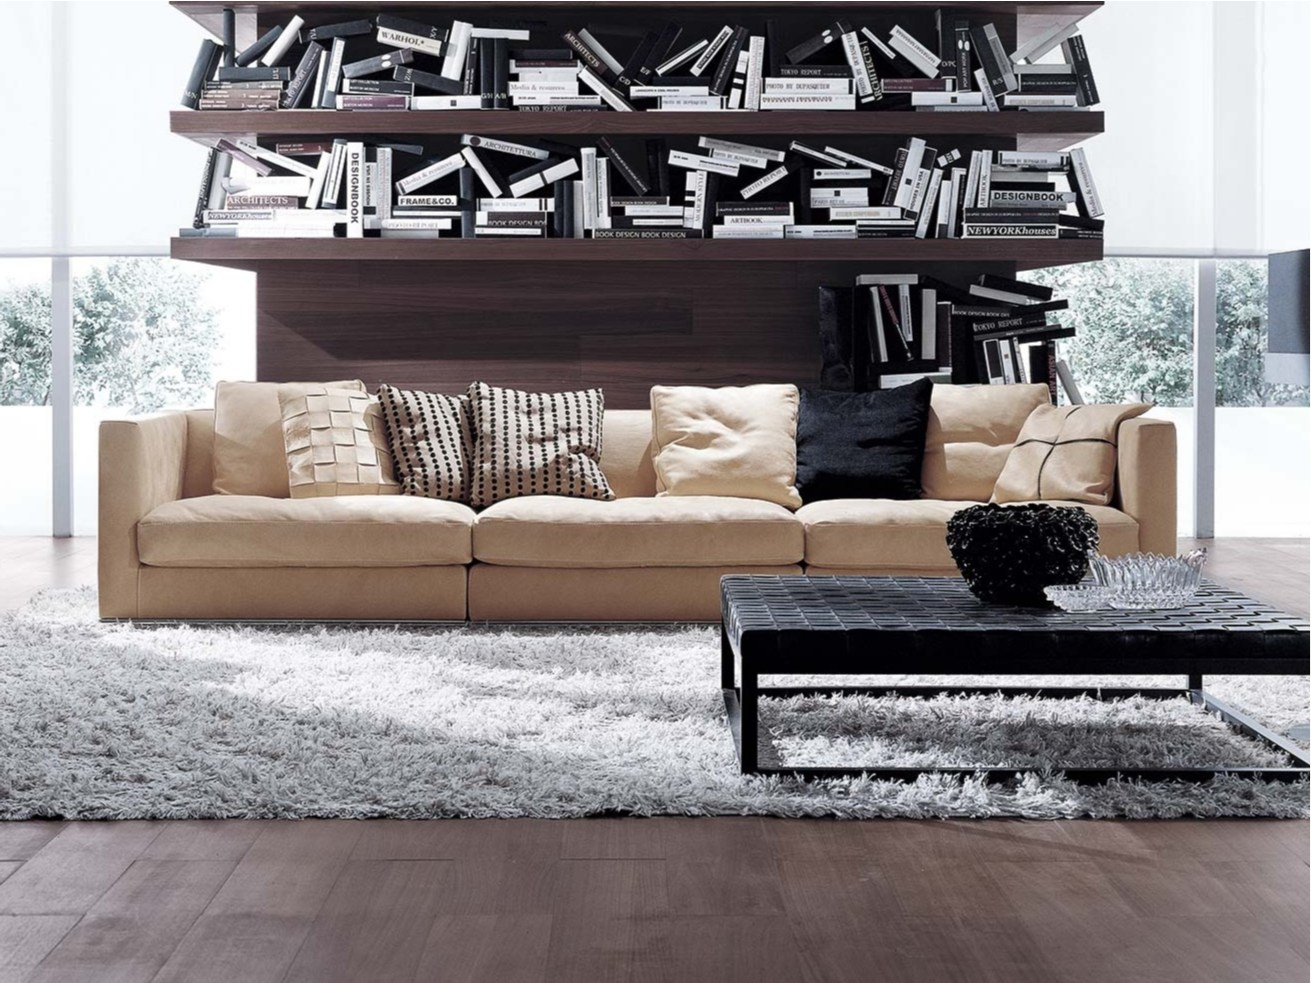 BILBAO Fabric sofa by FRIGERIO POLTRONE E DIVANI